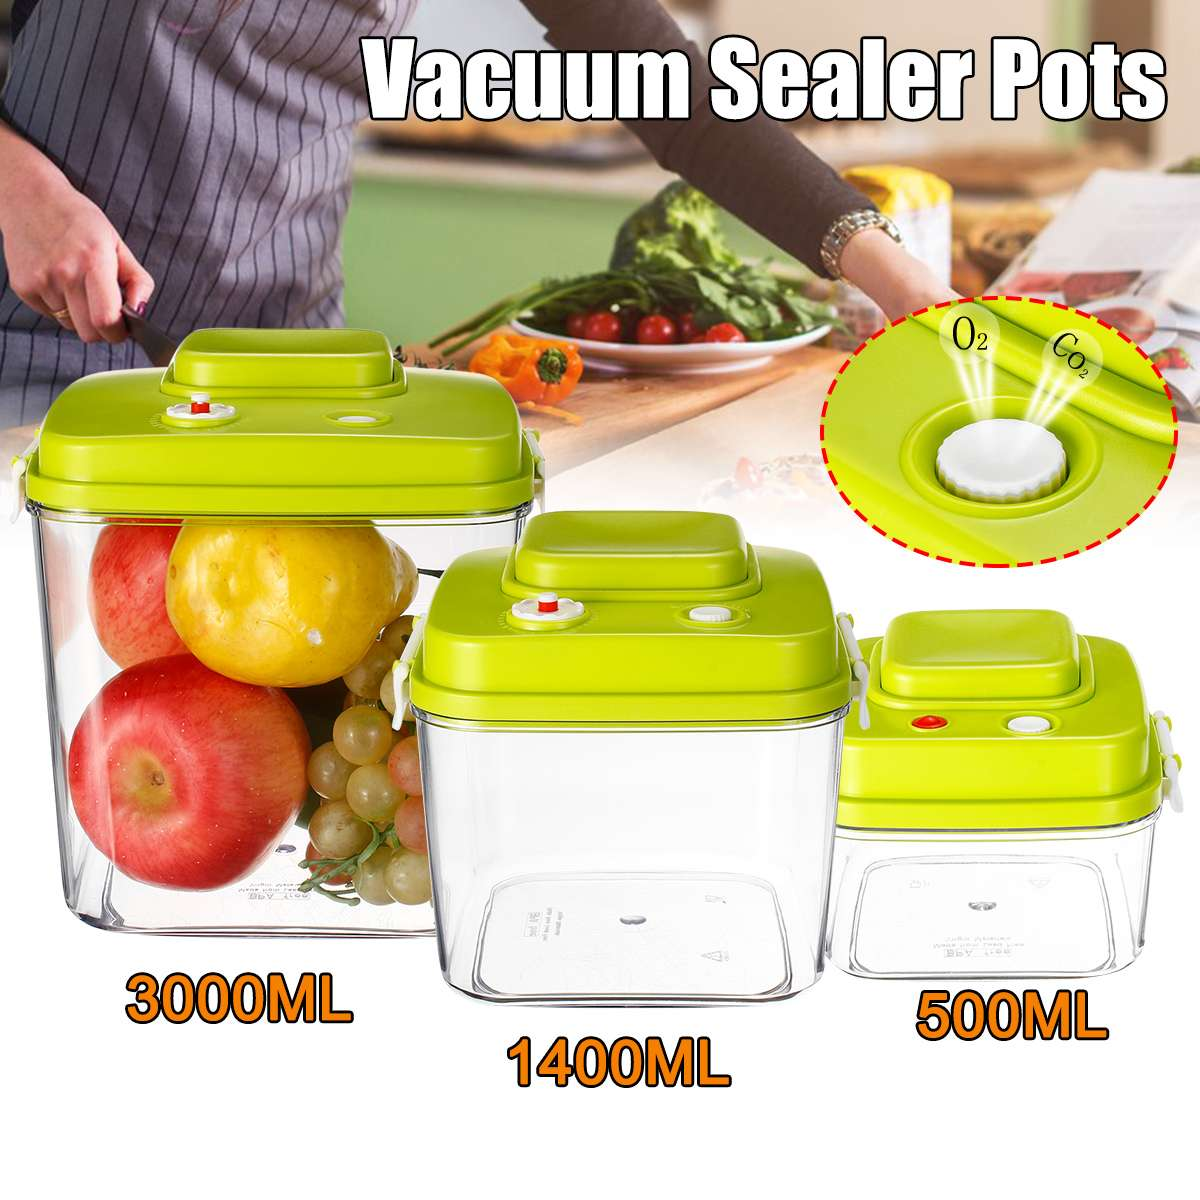 Vacuum Containers Fresh Can Damp Proof Tea Pot Food Container Seal Pot Vacuum Sealer Pots For Seal Foods 500/1400/3000ML